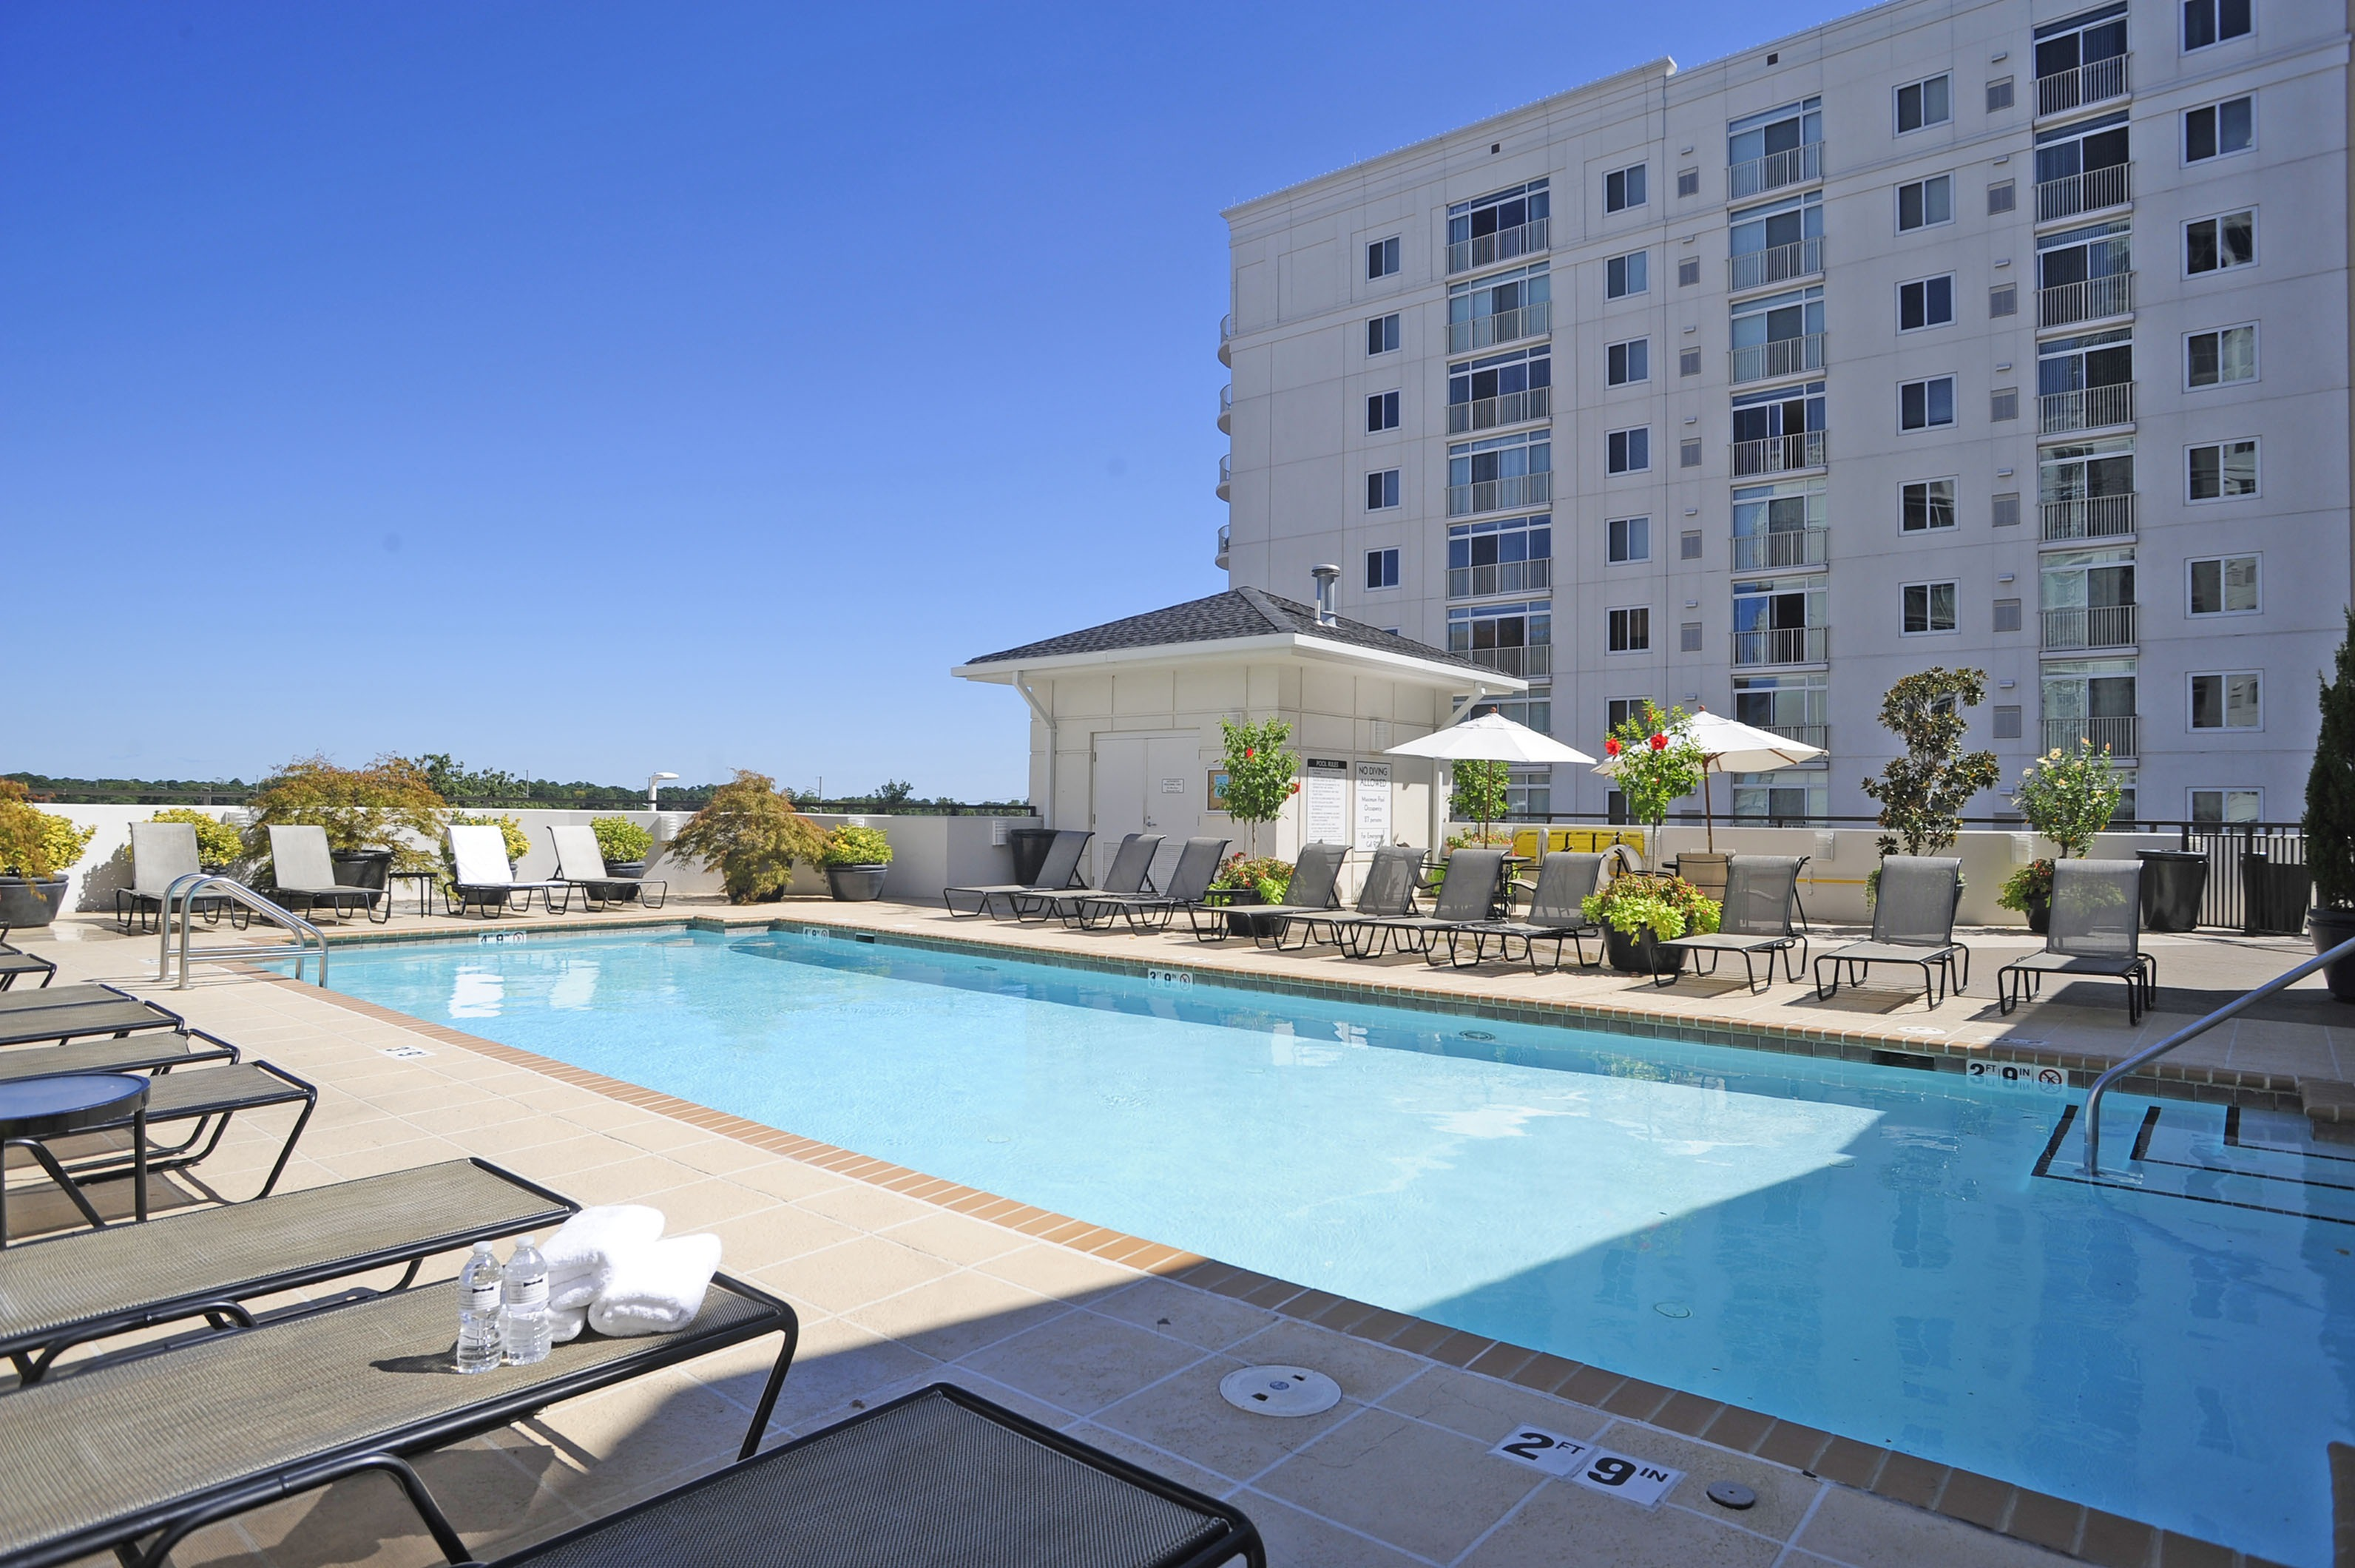 Image of Rooftop Pool for The Cosmopolitan Apartments